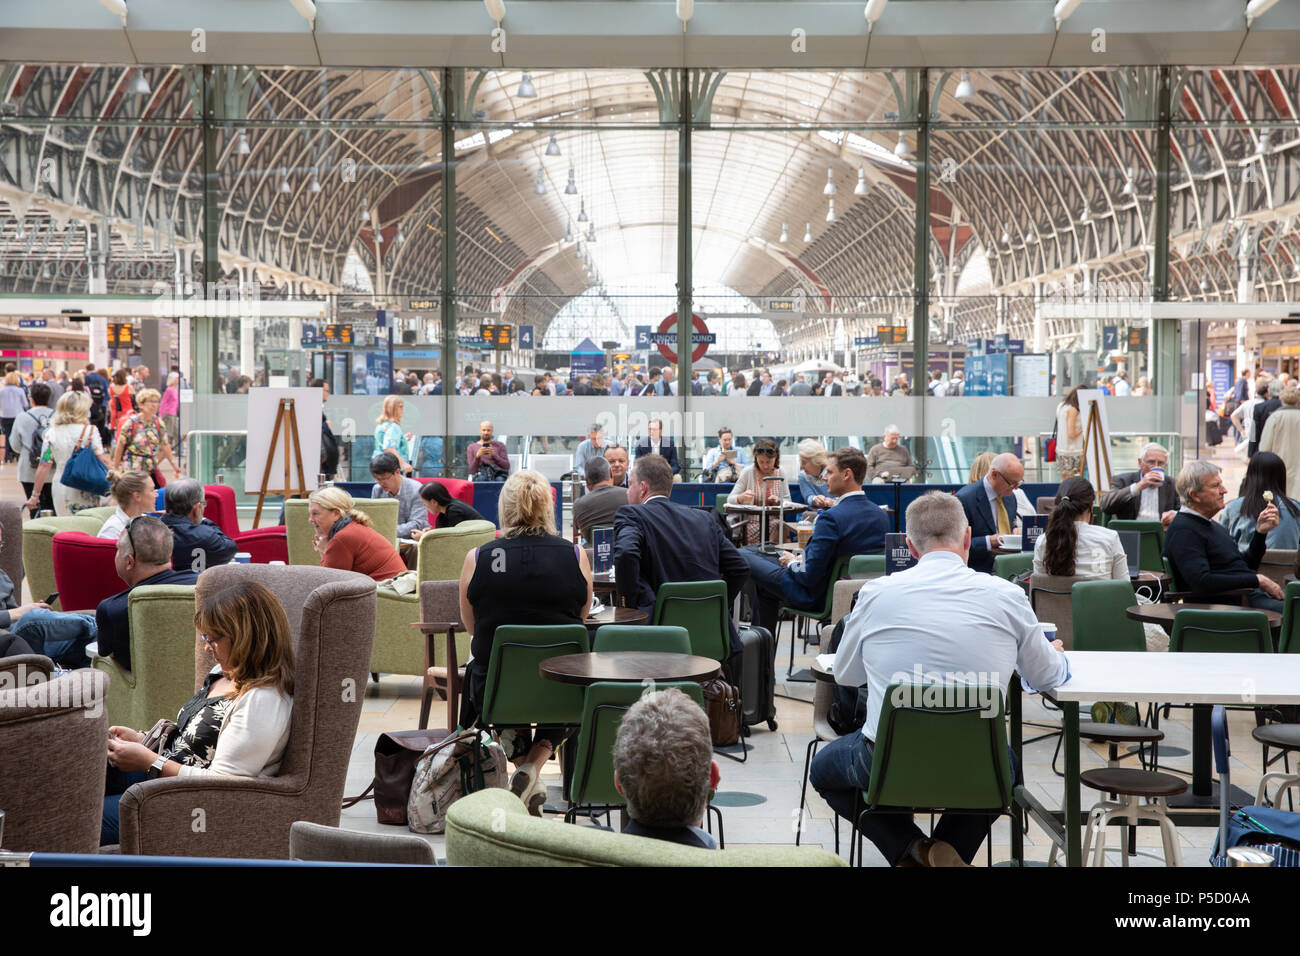 Caffe Ritazza in Paddington station, London. - Stock Image